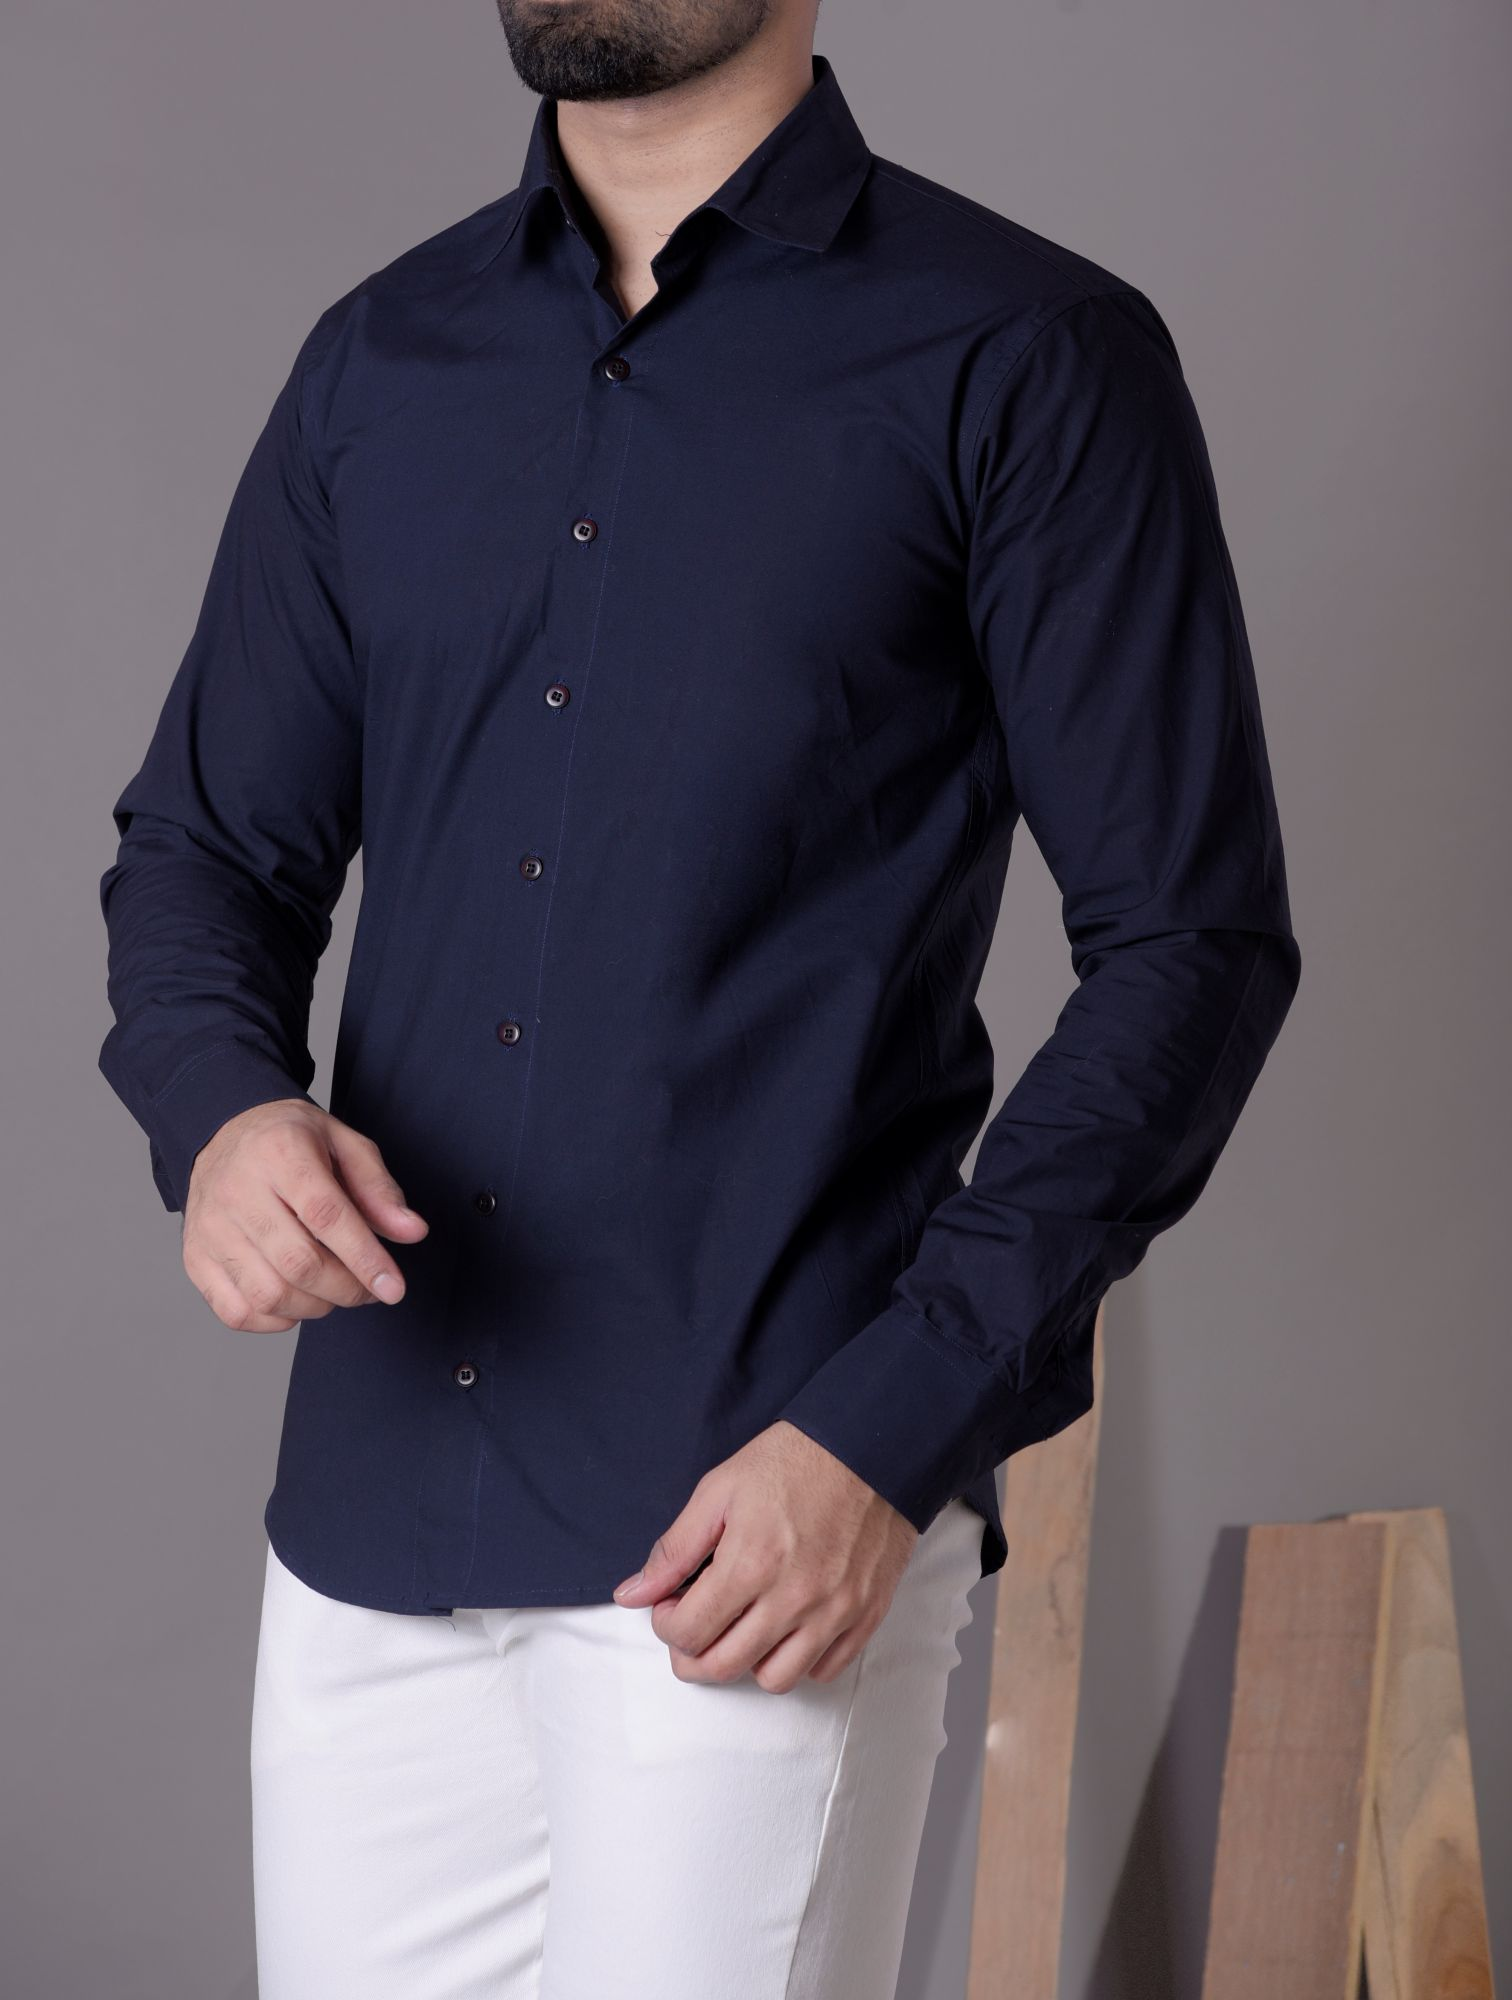 Formal shirt in blue